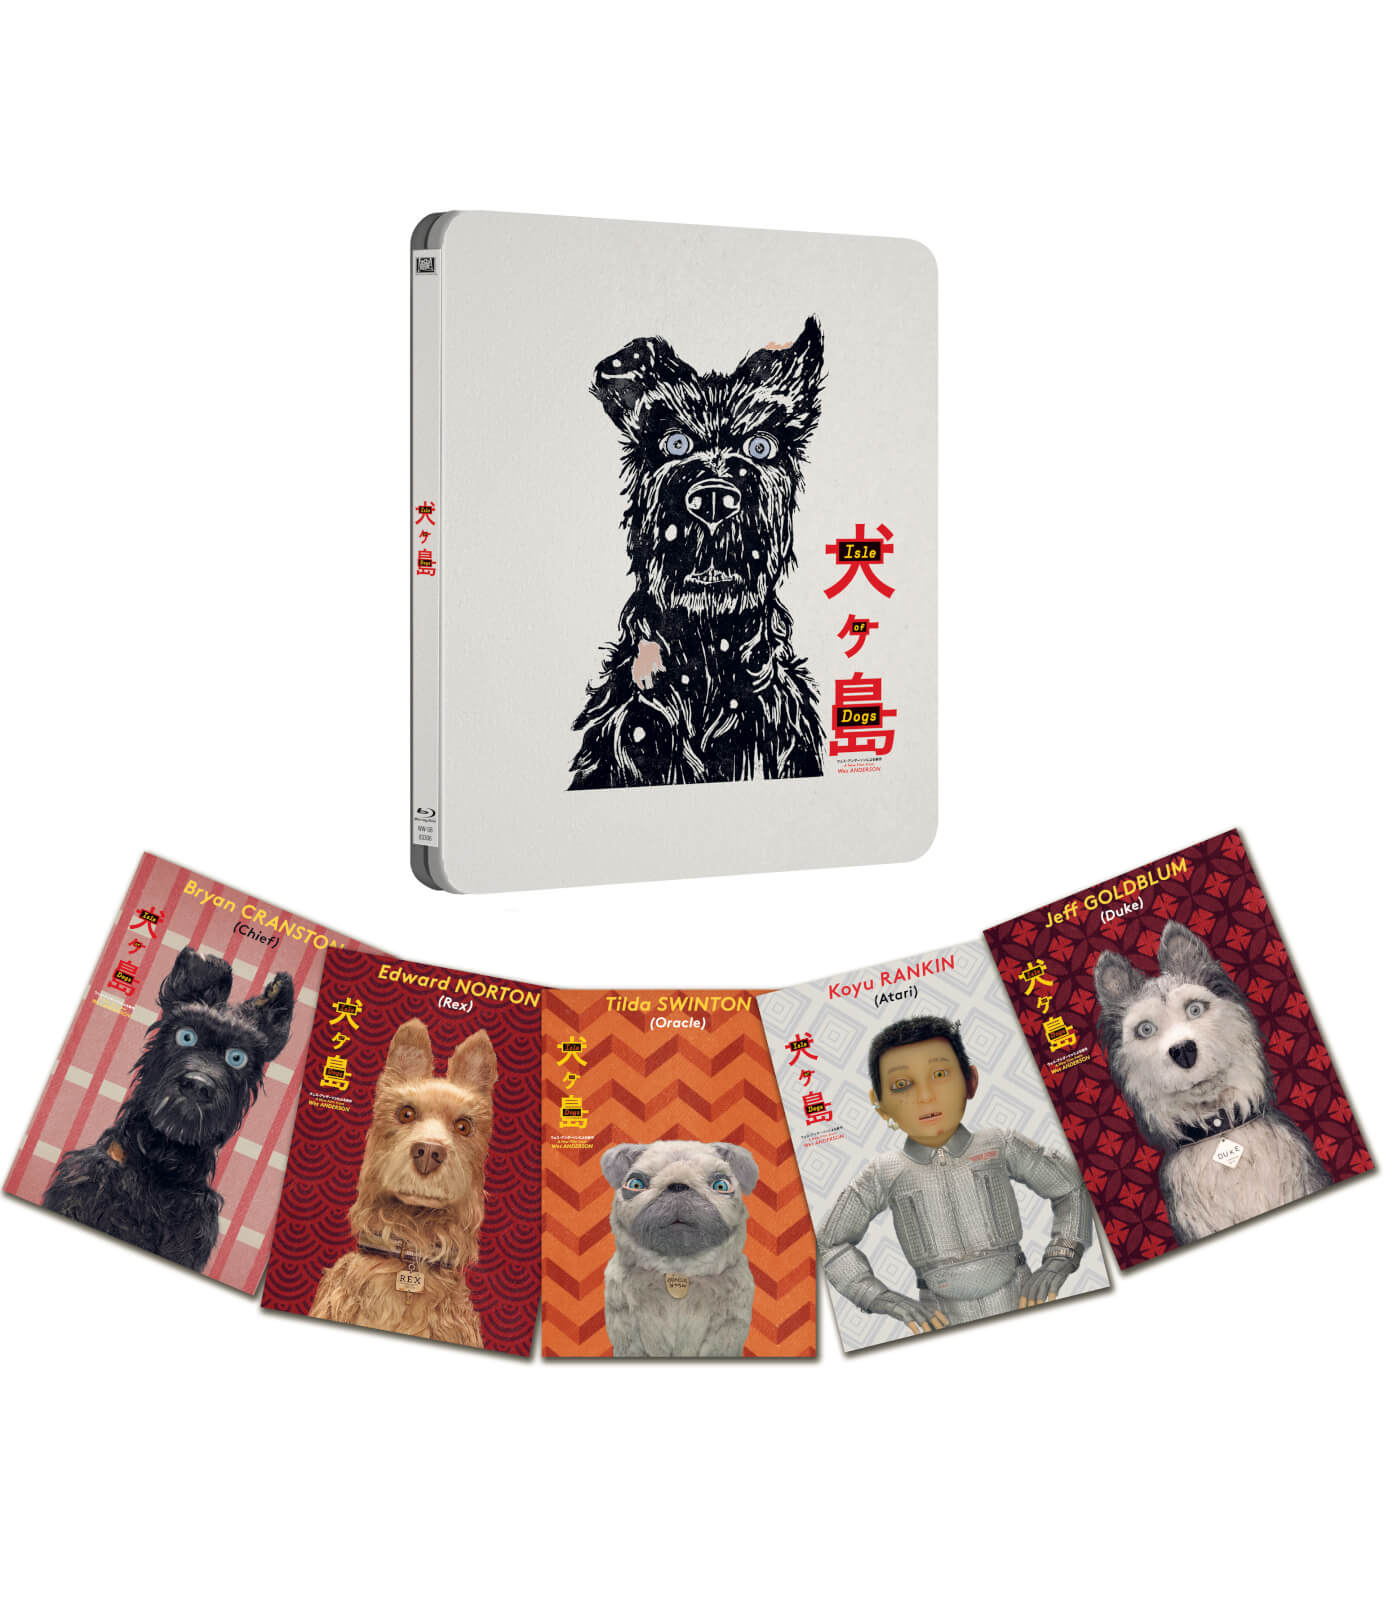 Isle Of Dogs Zavvi Exclusive Limited Edition Steelbook